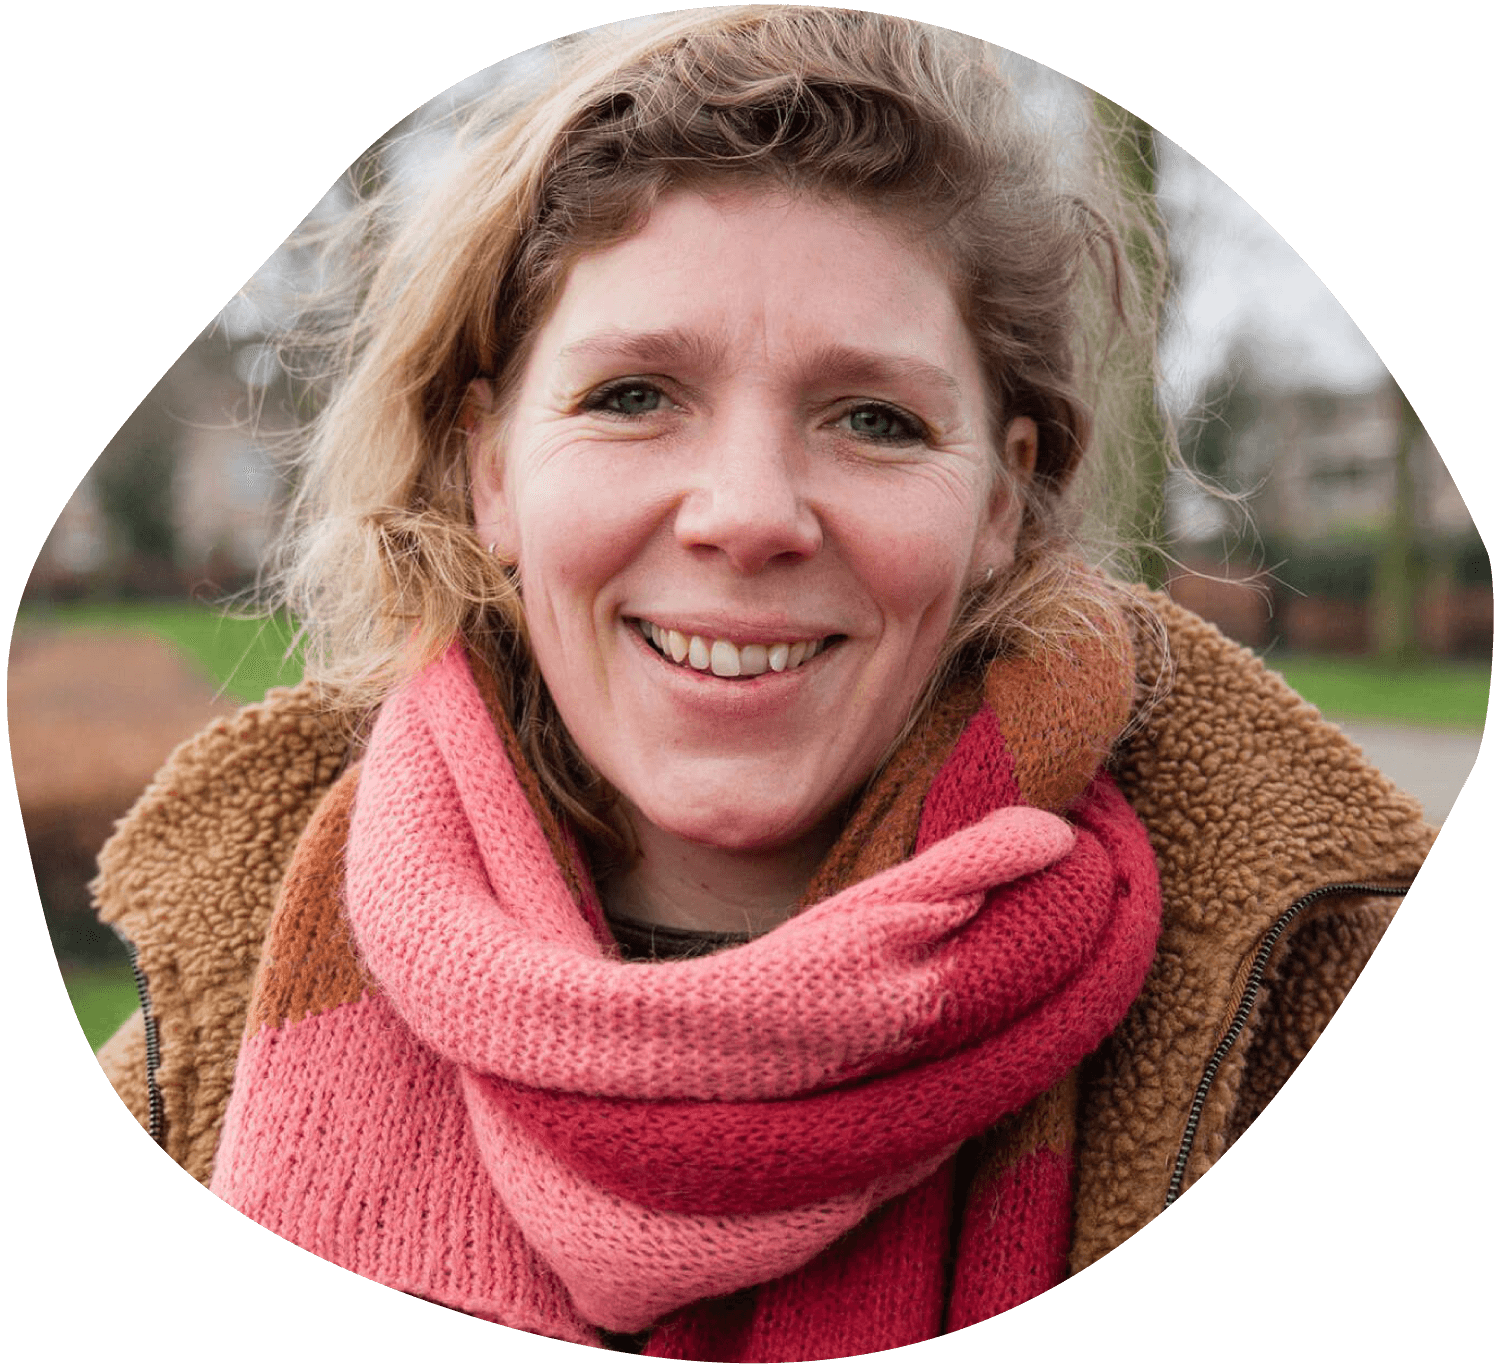 Kindercoach Amersfoort | Coach voor kind en ouder | Sonja Elsenburg